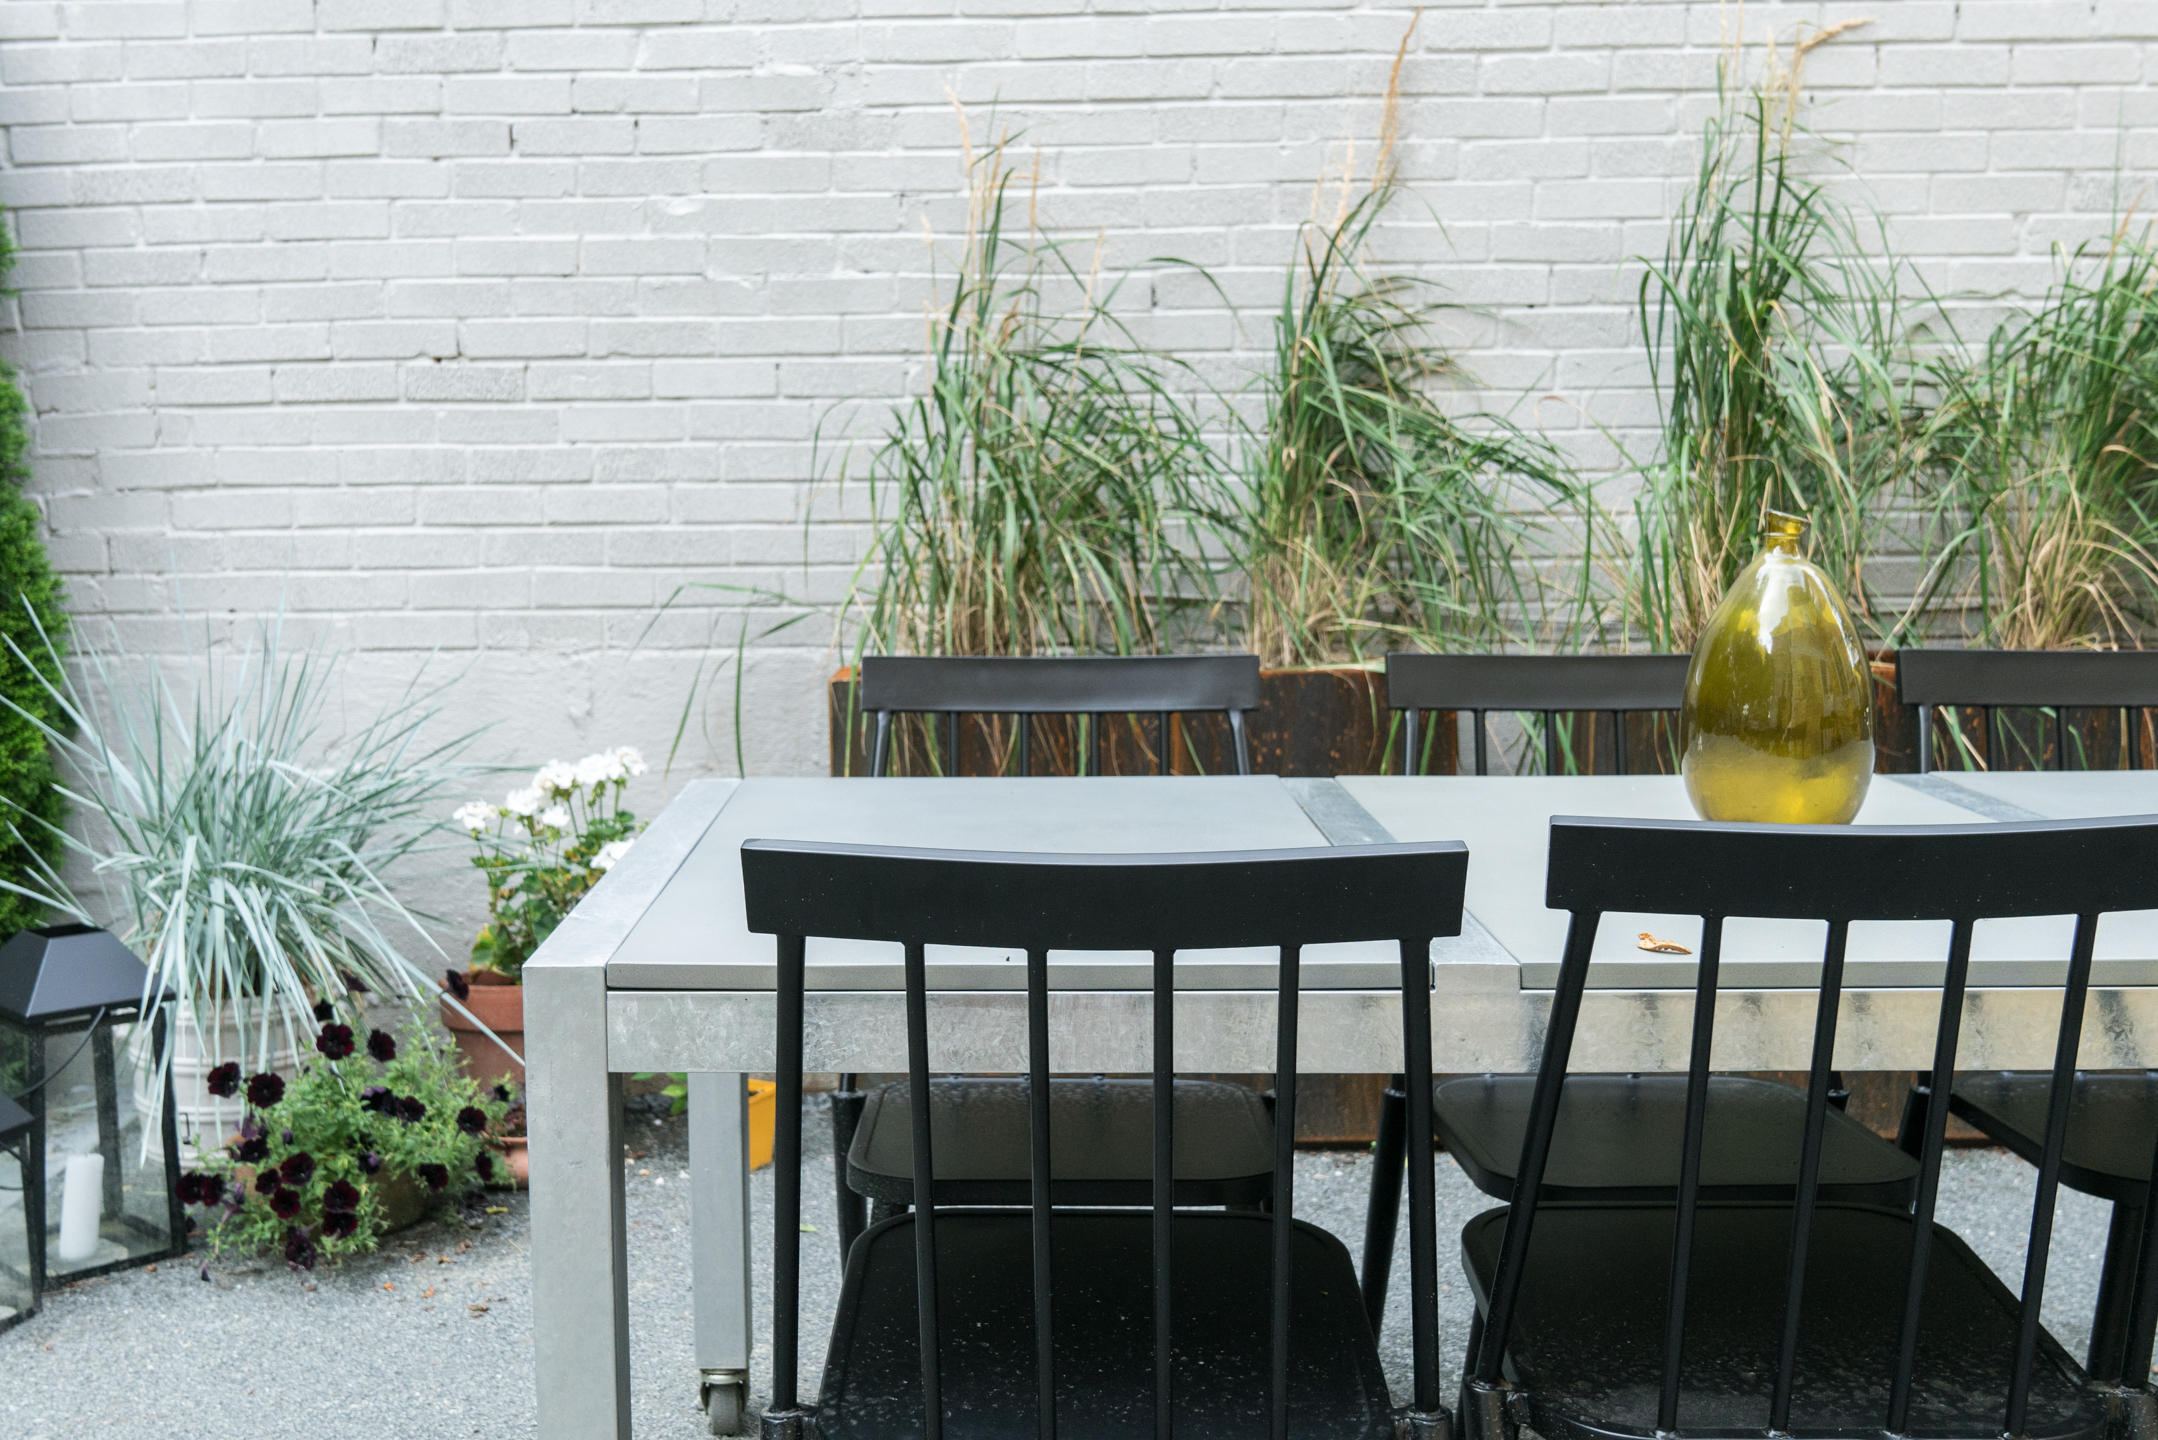 corten steel planters with grass, concrete outdoor dining table